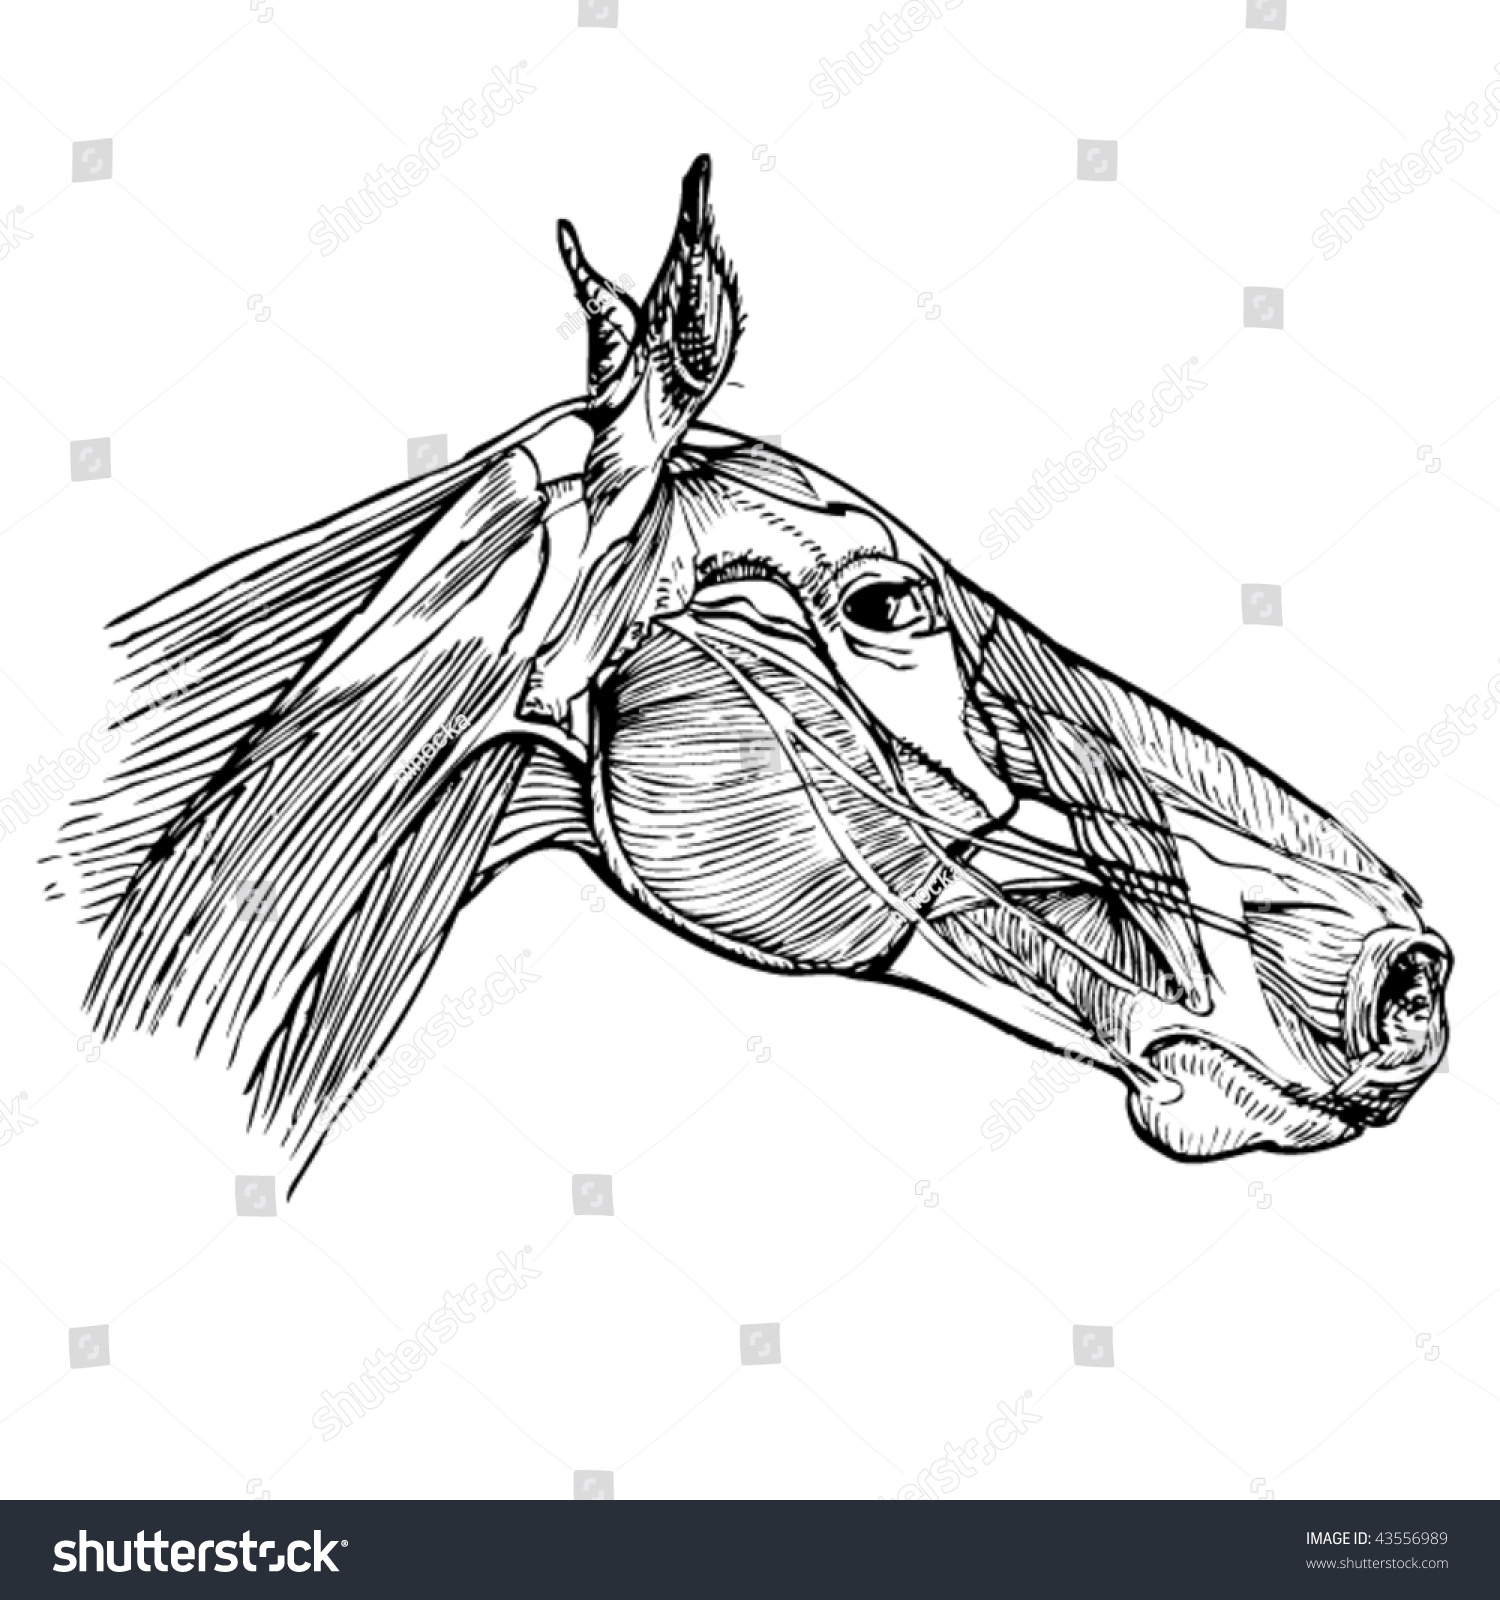 Stock Vector Illustration Study Drawing Horse Stock Vector (Royalty ...